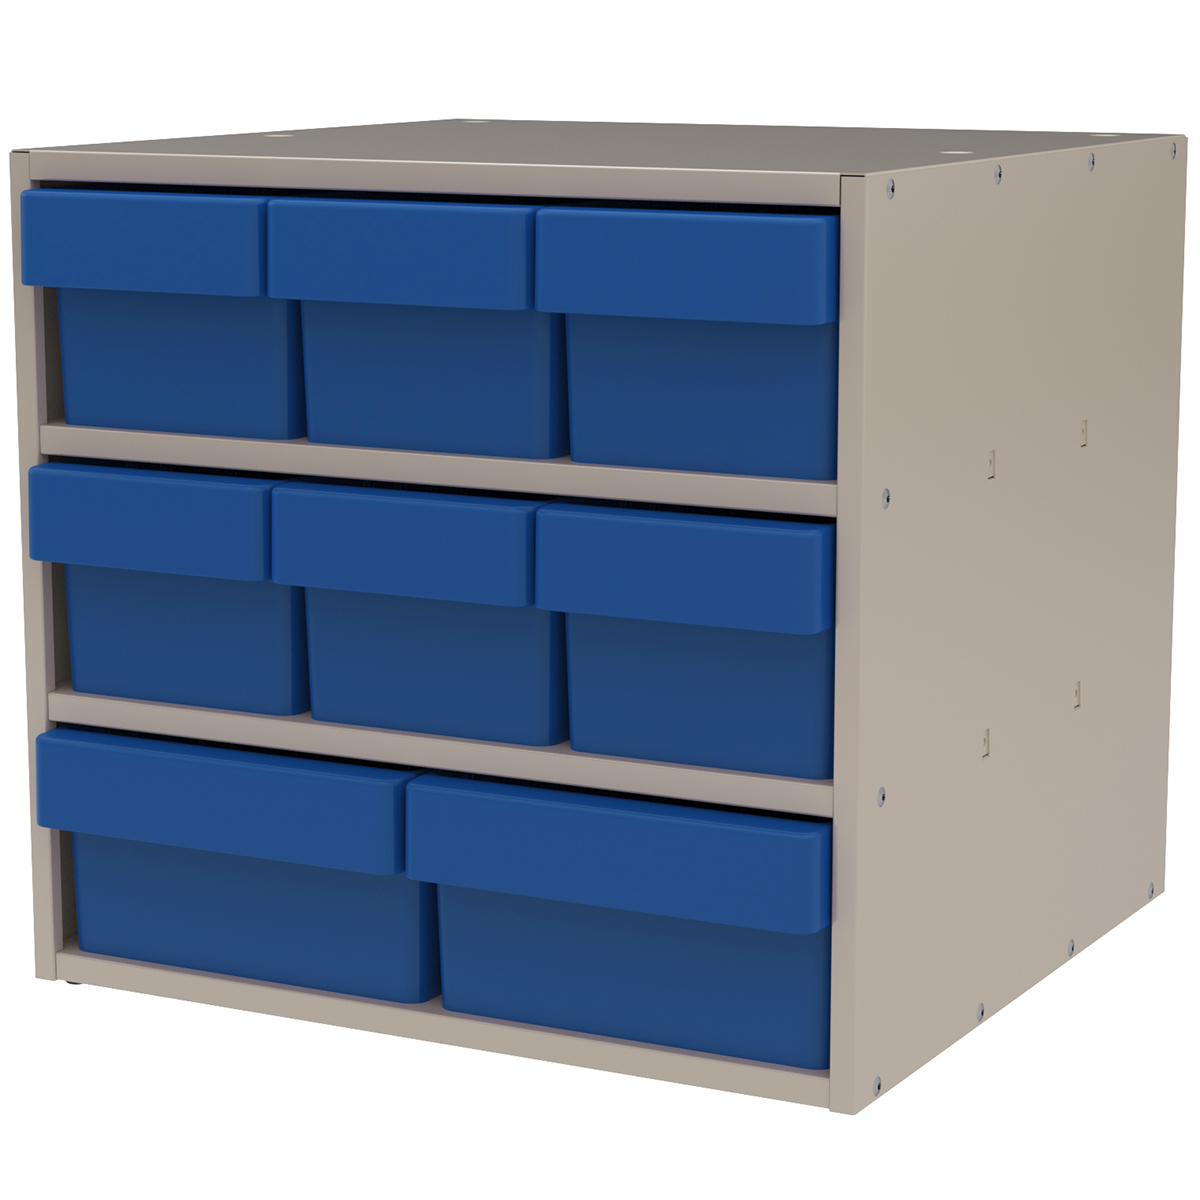 Item DISCONTINUED by Manufacturer.  Modular Cabinet, 18x17x16, 8 Drawers, Putty/Blue (AD1817PASTBLU).  This item sold in carton quantities of 1.